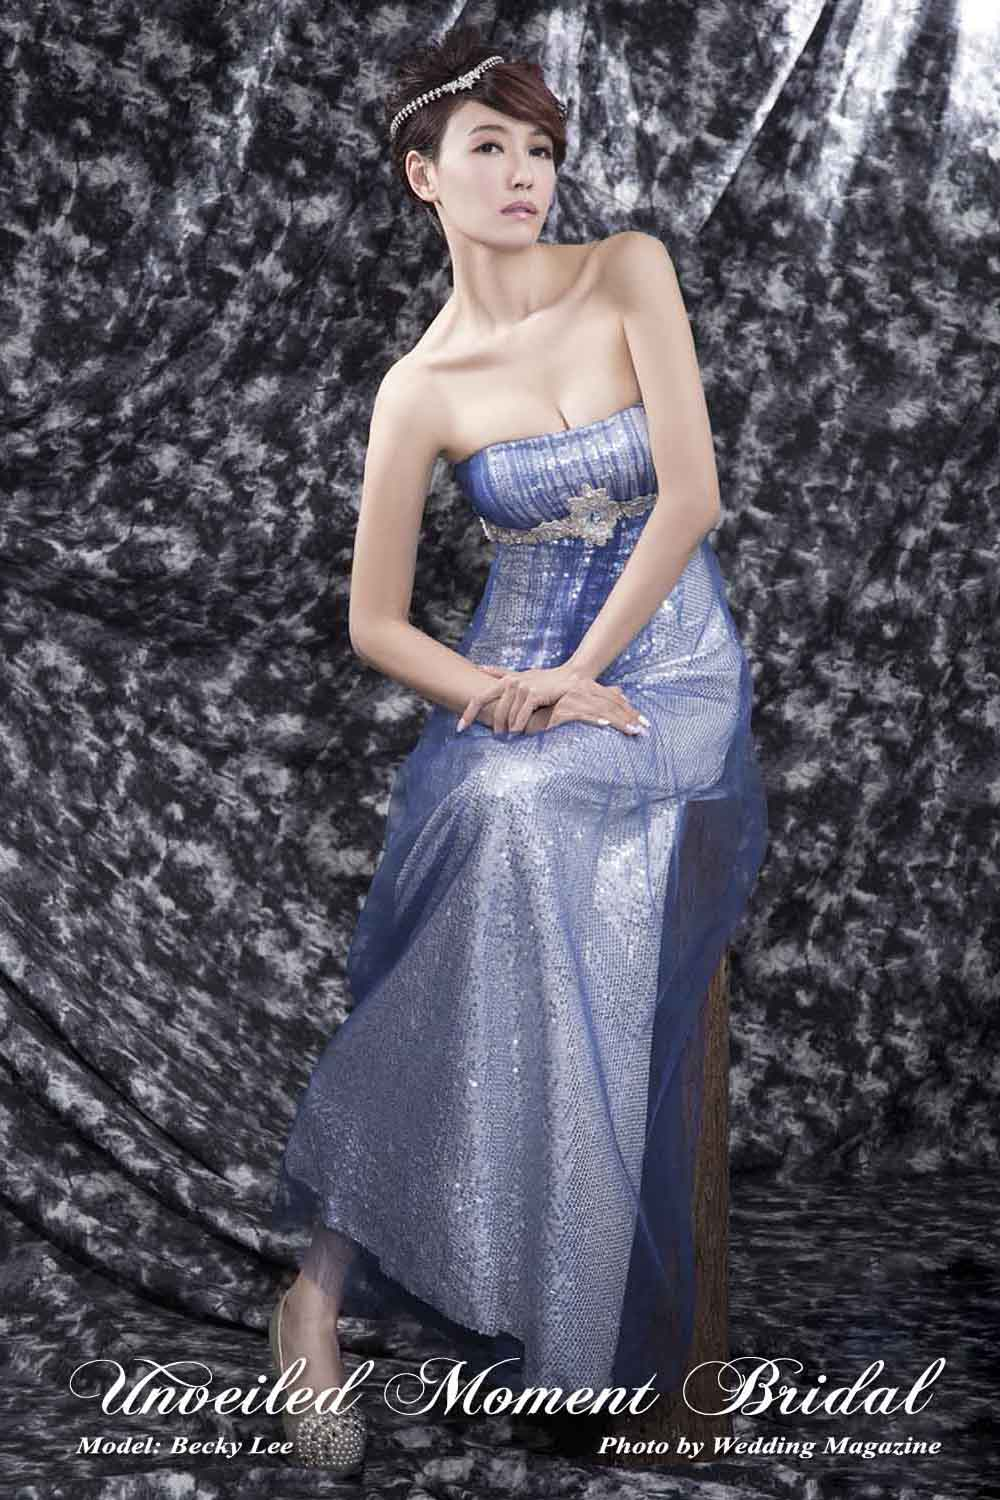 Strapless, floor-length, empire waistline sequined evening dress with a tulle overlay and an embellished waistline. Colour: Silver and Royal Blue. 無肩帶 low-cut, 高腰款, 釘珠腰飾, 藍色網紗閃片晚裝裙